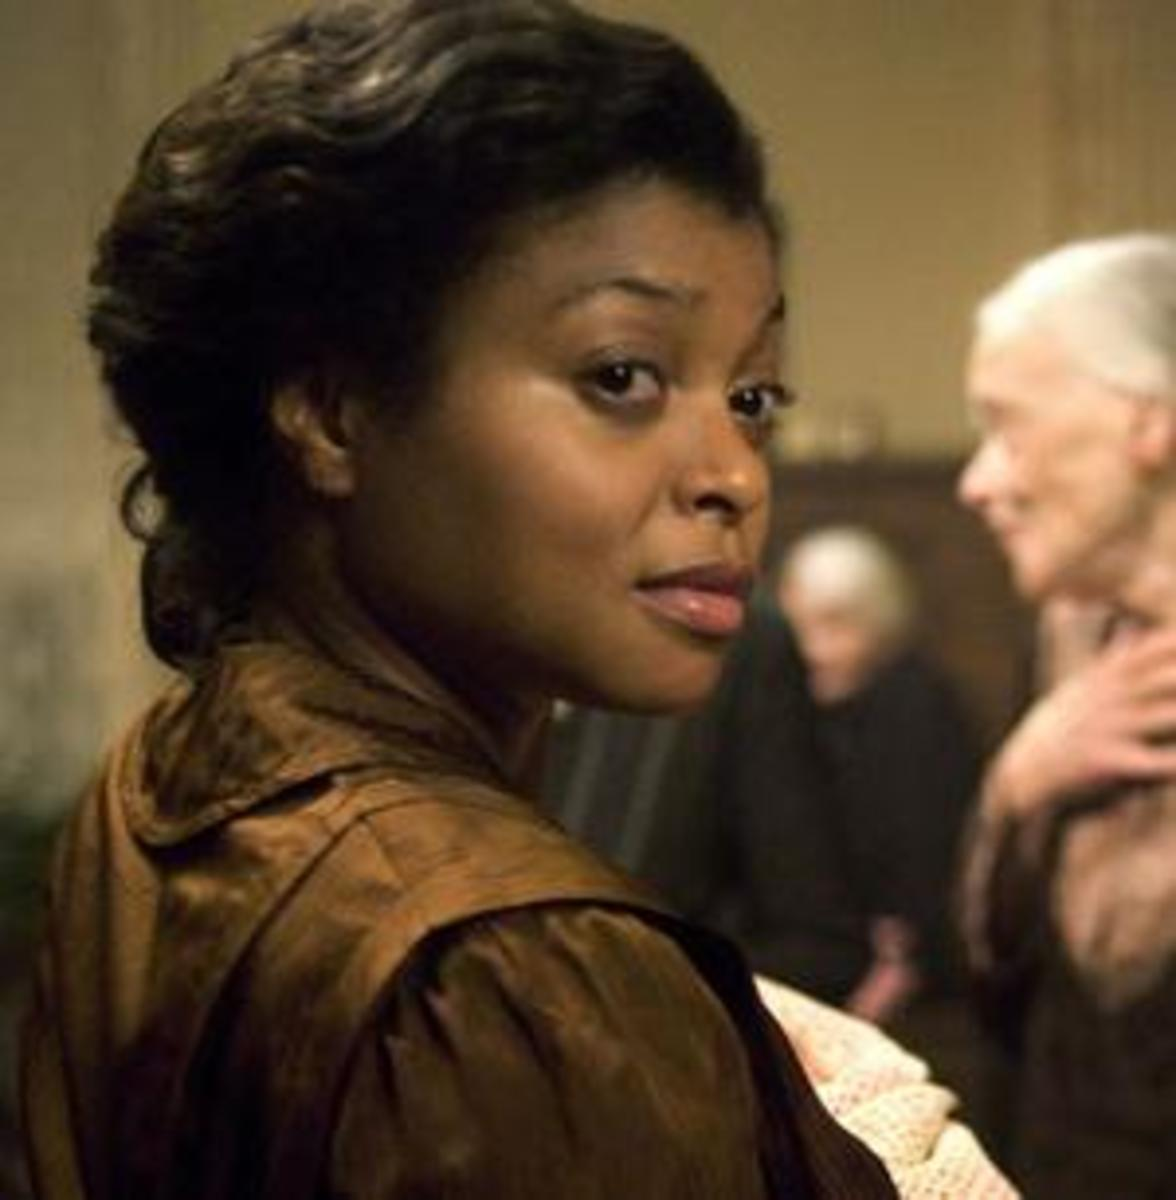 Taraji P. Henson as the character Queenie in The Curious Case of Benjamin Button the movie.